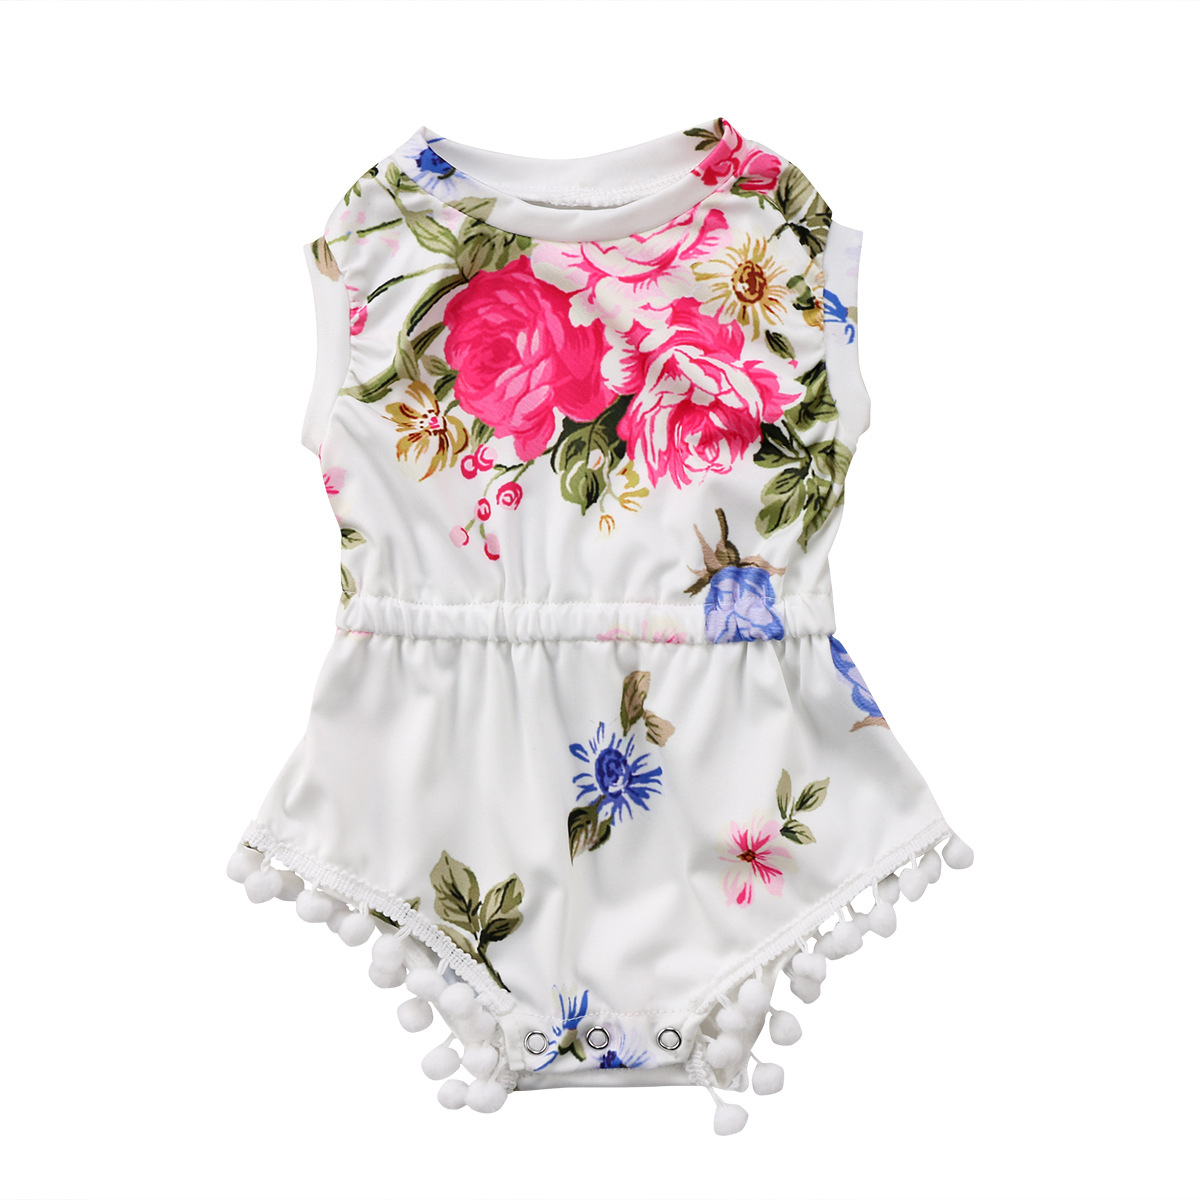 2018 New Newborn Toddler Baby Girl Clothes Floral Pom Pom Romper Cotton Sleeveless Jumpsuit Summer Flower Baby Girls Clothing